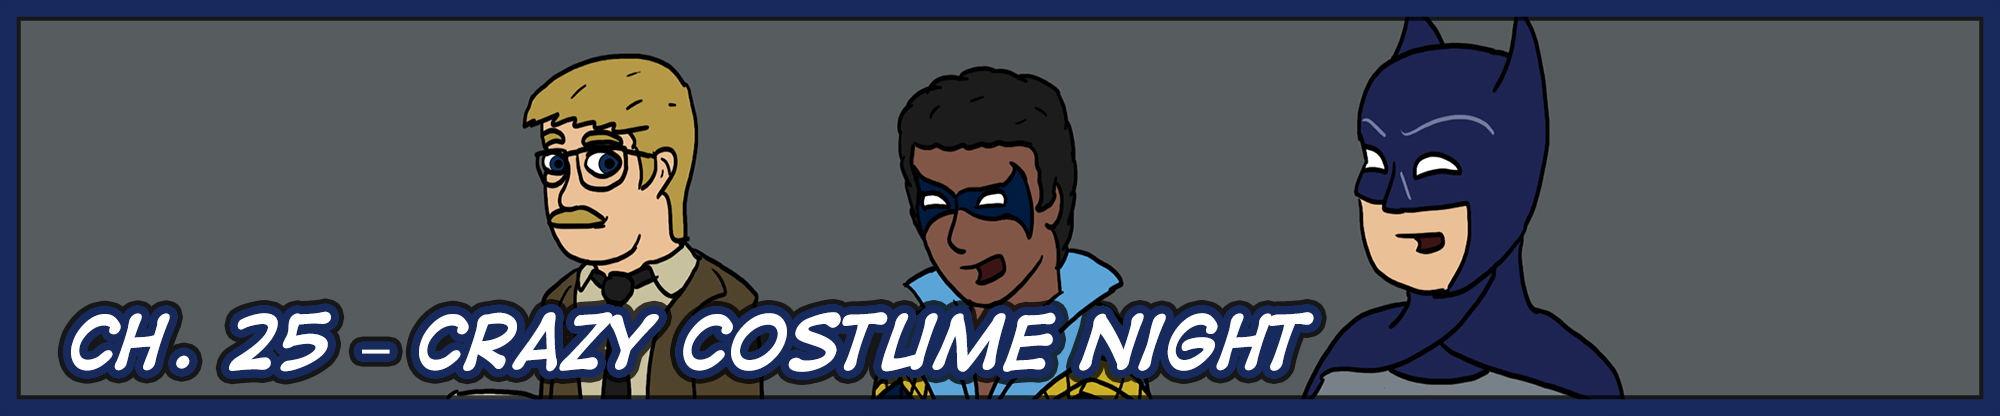 Ch. 25 – Crazy Costume Night